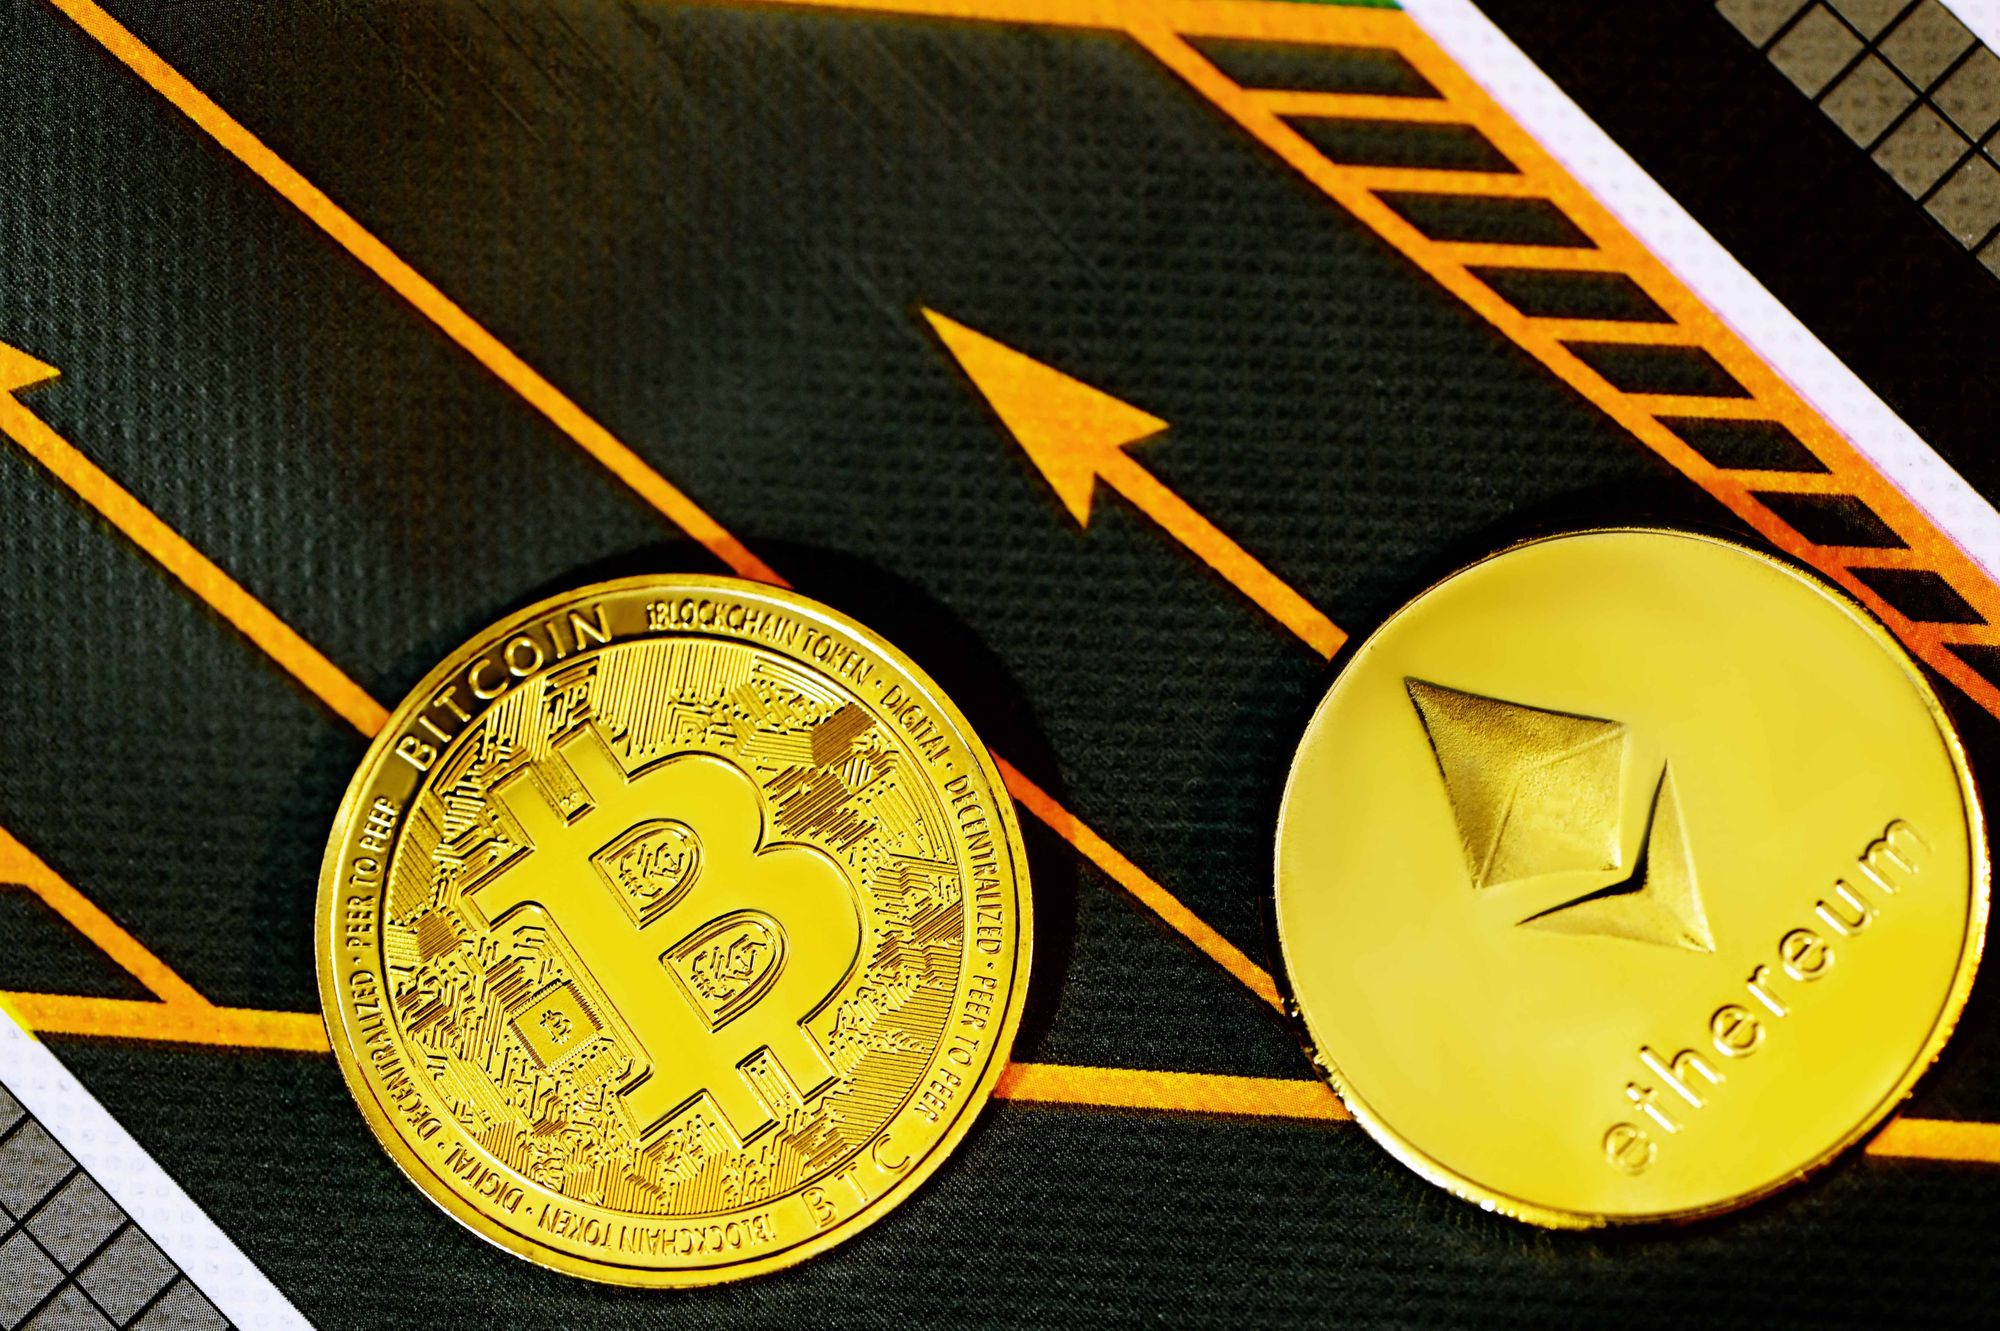 How to Safely Invest in Cryptocurrency: 6 Things to Know Before Trading